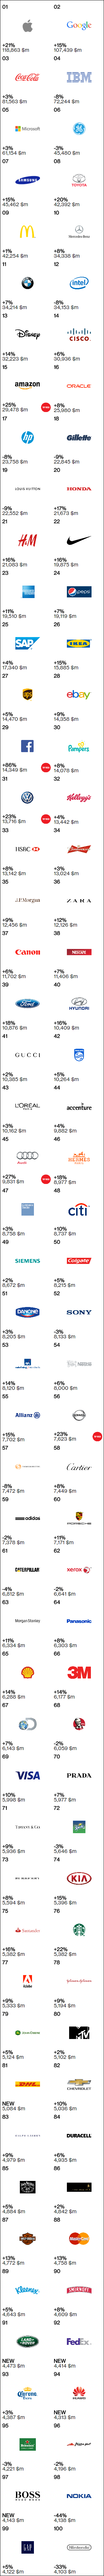 Rankings - Best Global Brands - Interbrand